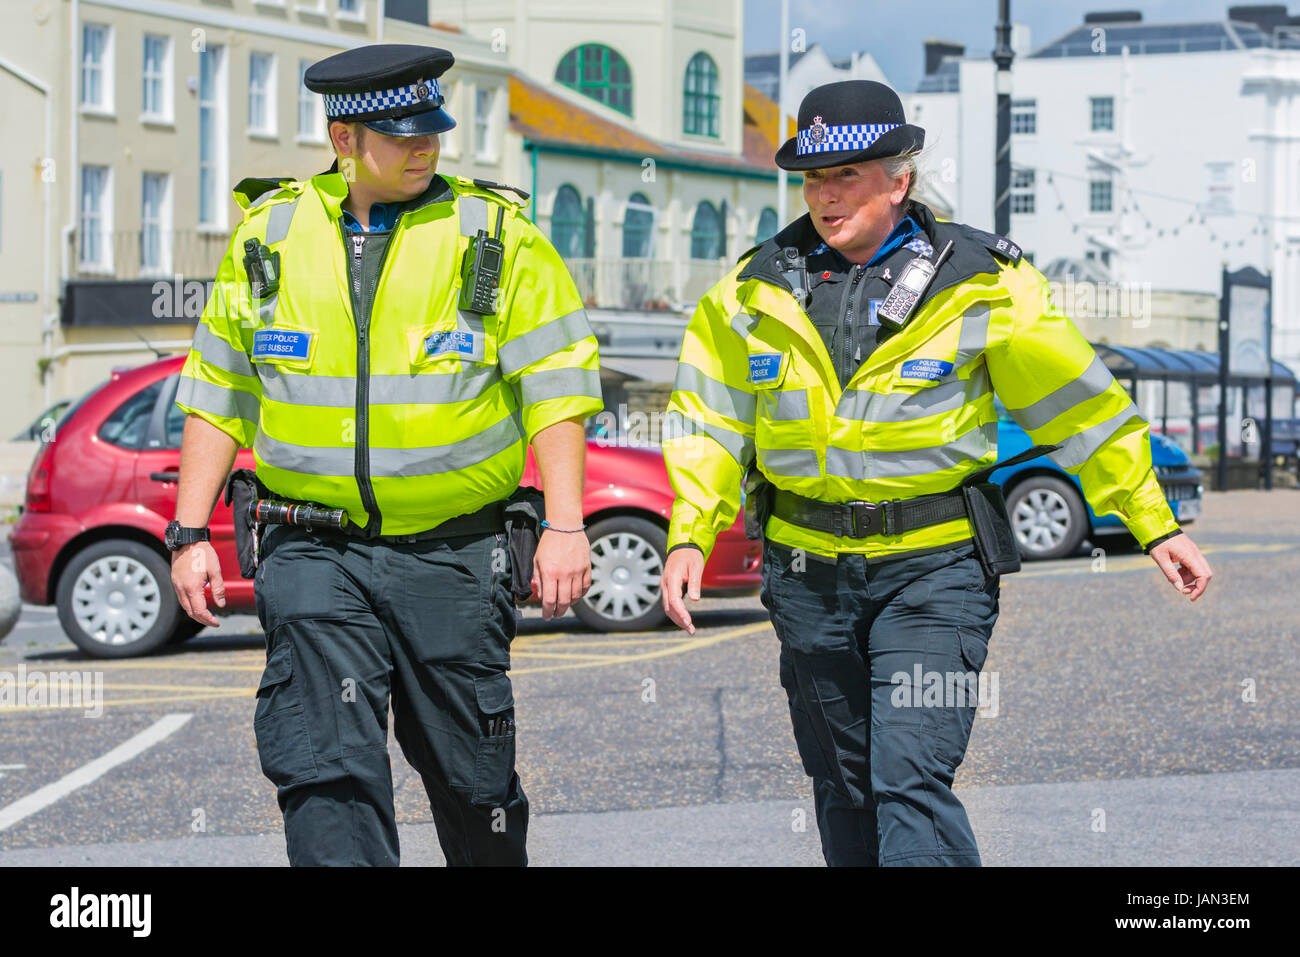 PCSO. Police Community Support Officers patrolling along the seafront promenade in West Sussex, UK. - Stock Image